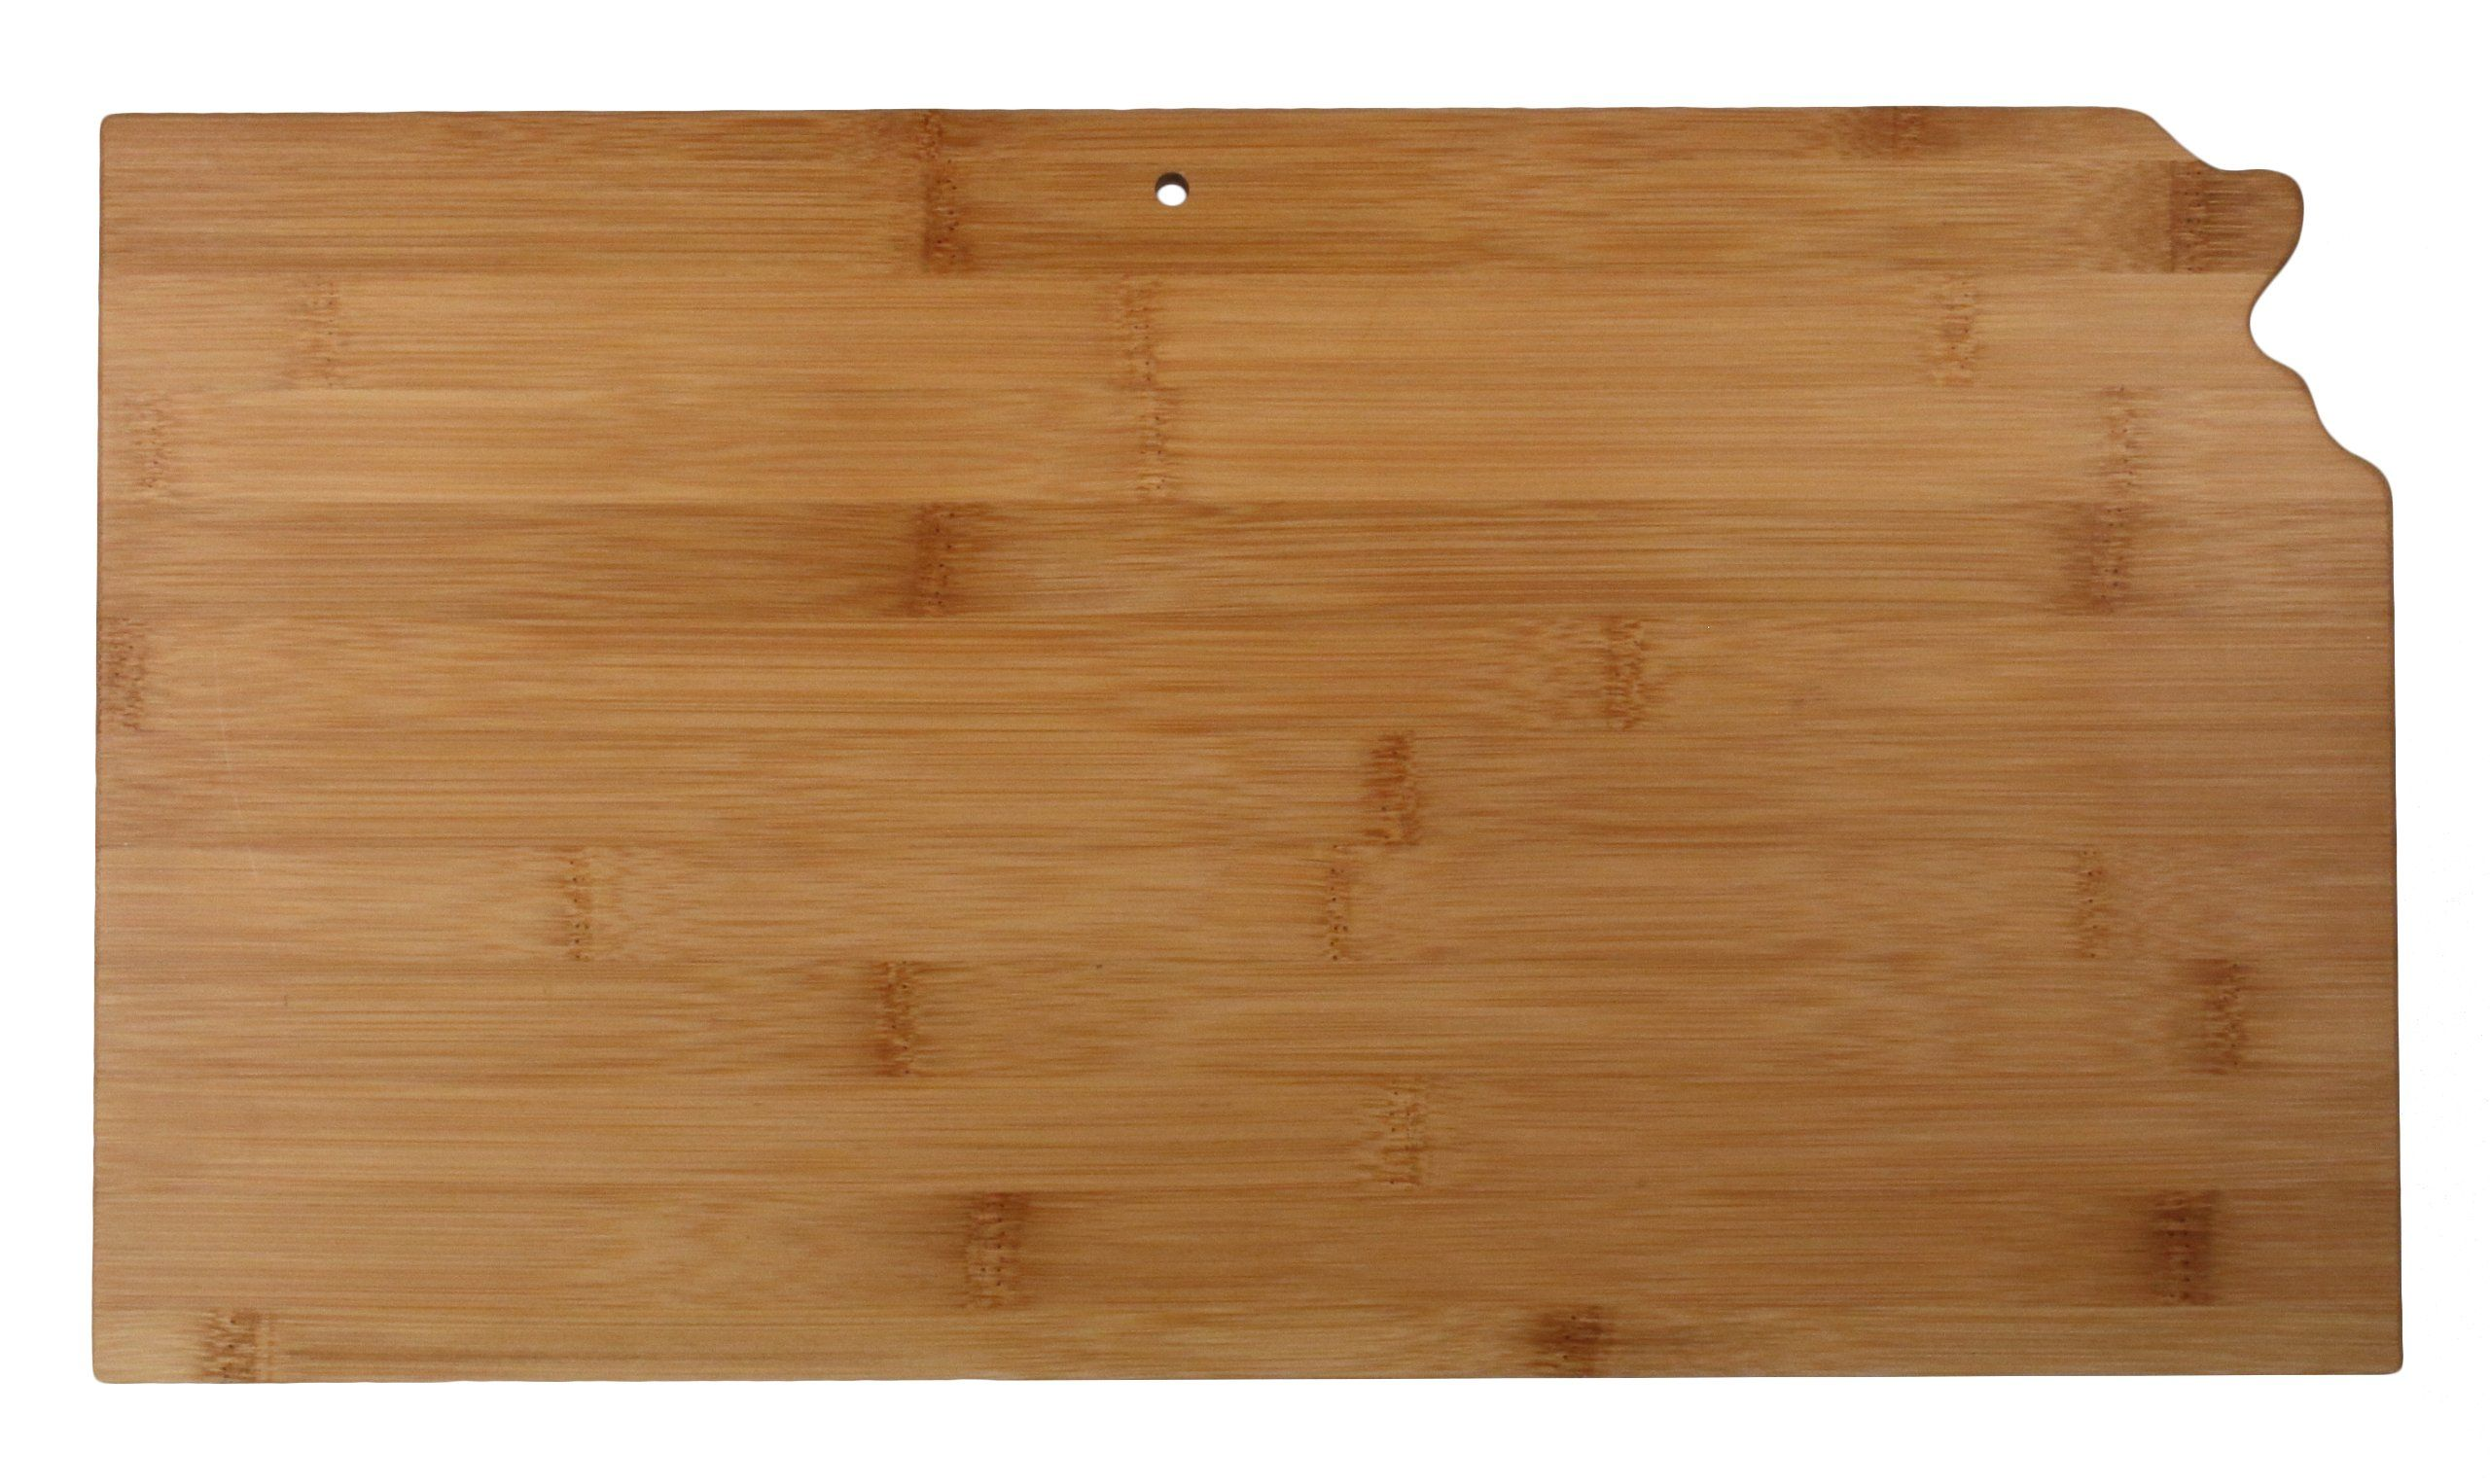 Amazon.com: Totally Bamboo Cutting and Serving Board, Kansas State: Home & Kitchen